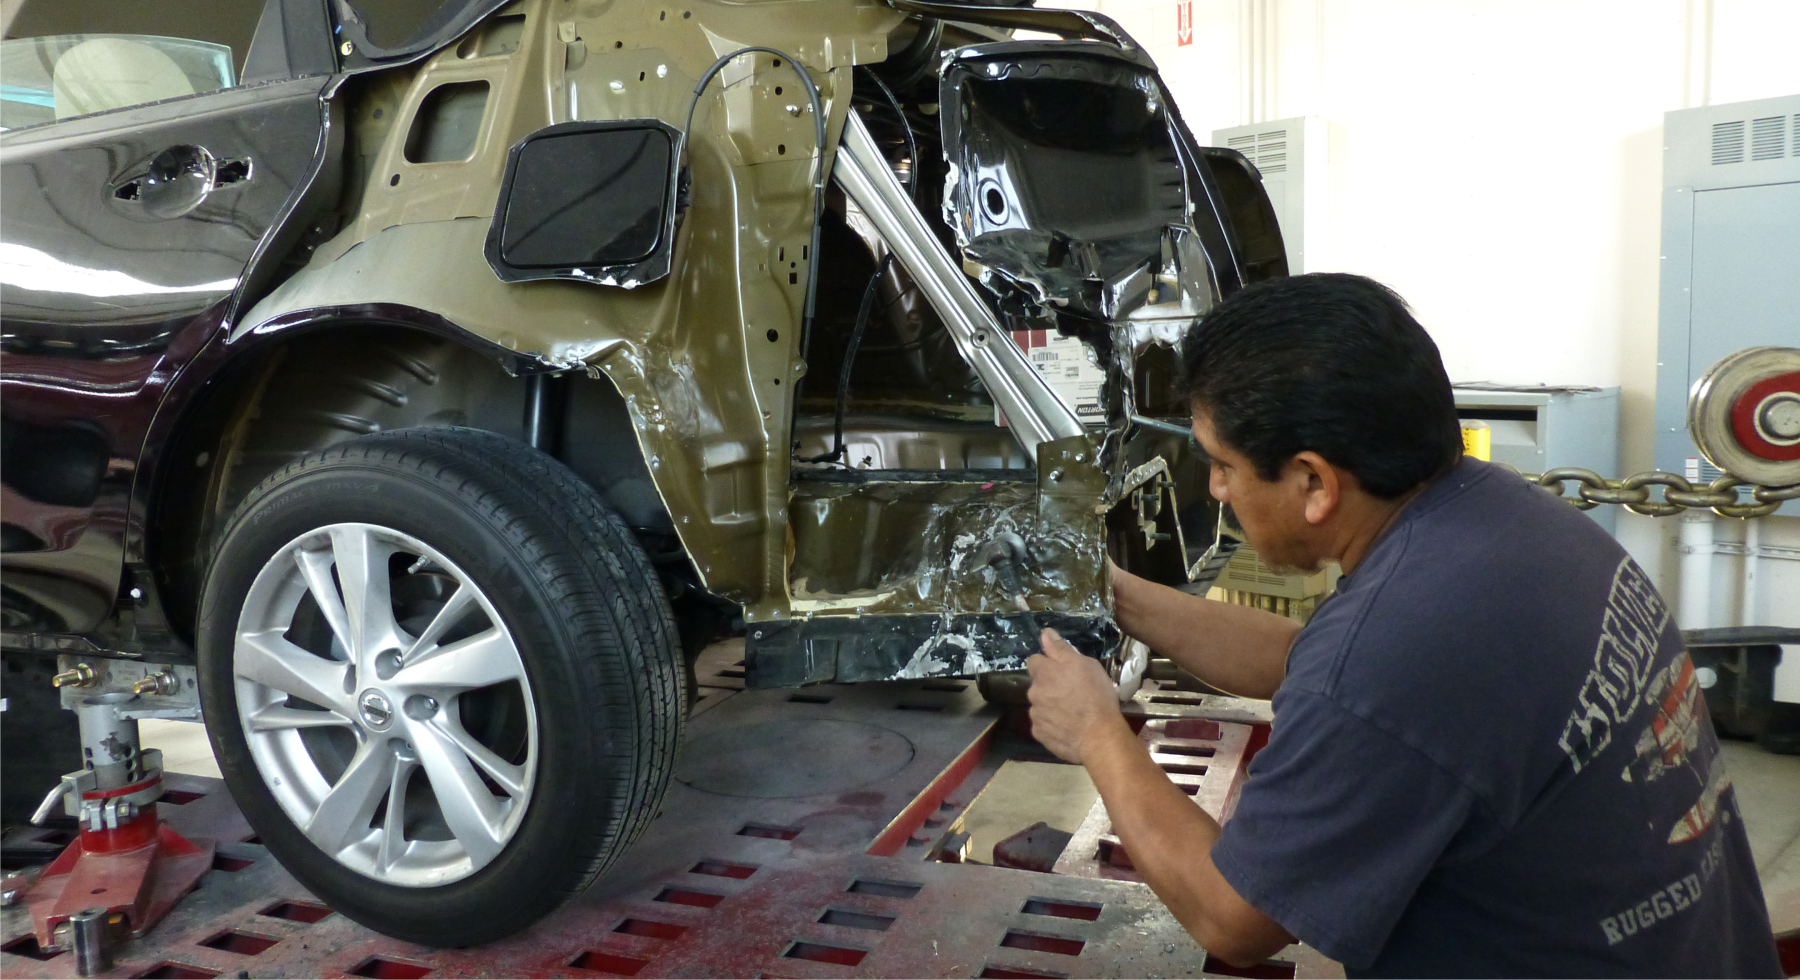 Body, Paint and Collision Repairs in Oxnard, Ventura, Thousand Oaks counties in California